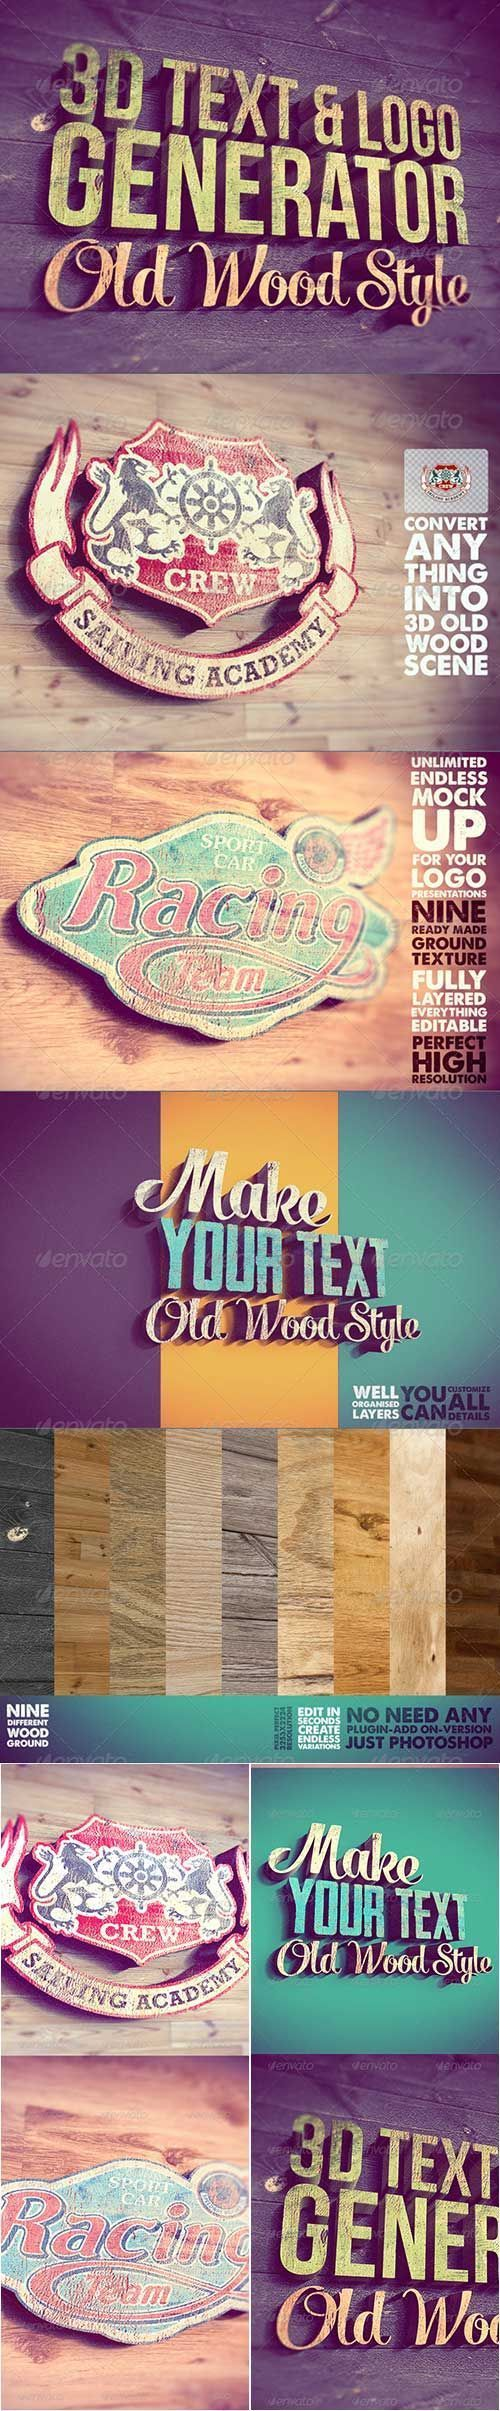 Poster design maker free download - 3d Text Logo Generator 2 Free Hero Graphic Design Vectors Aep Projects Psd Sources